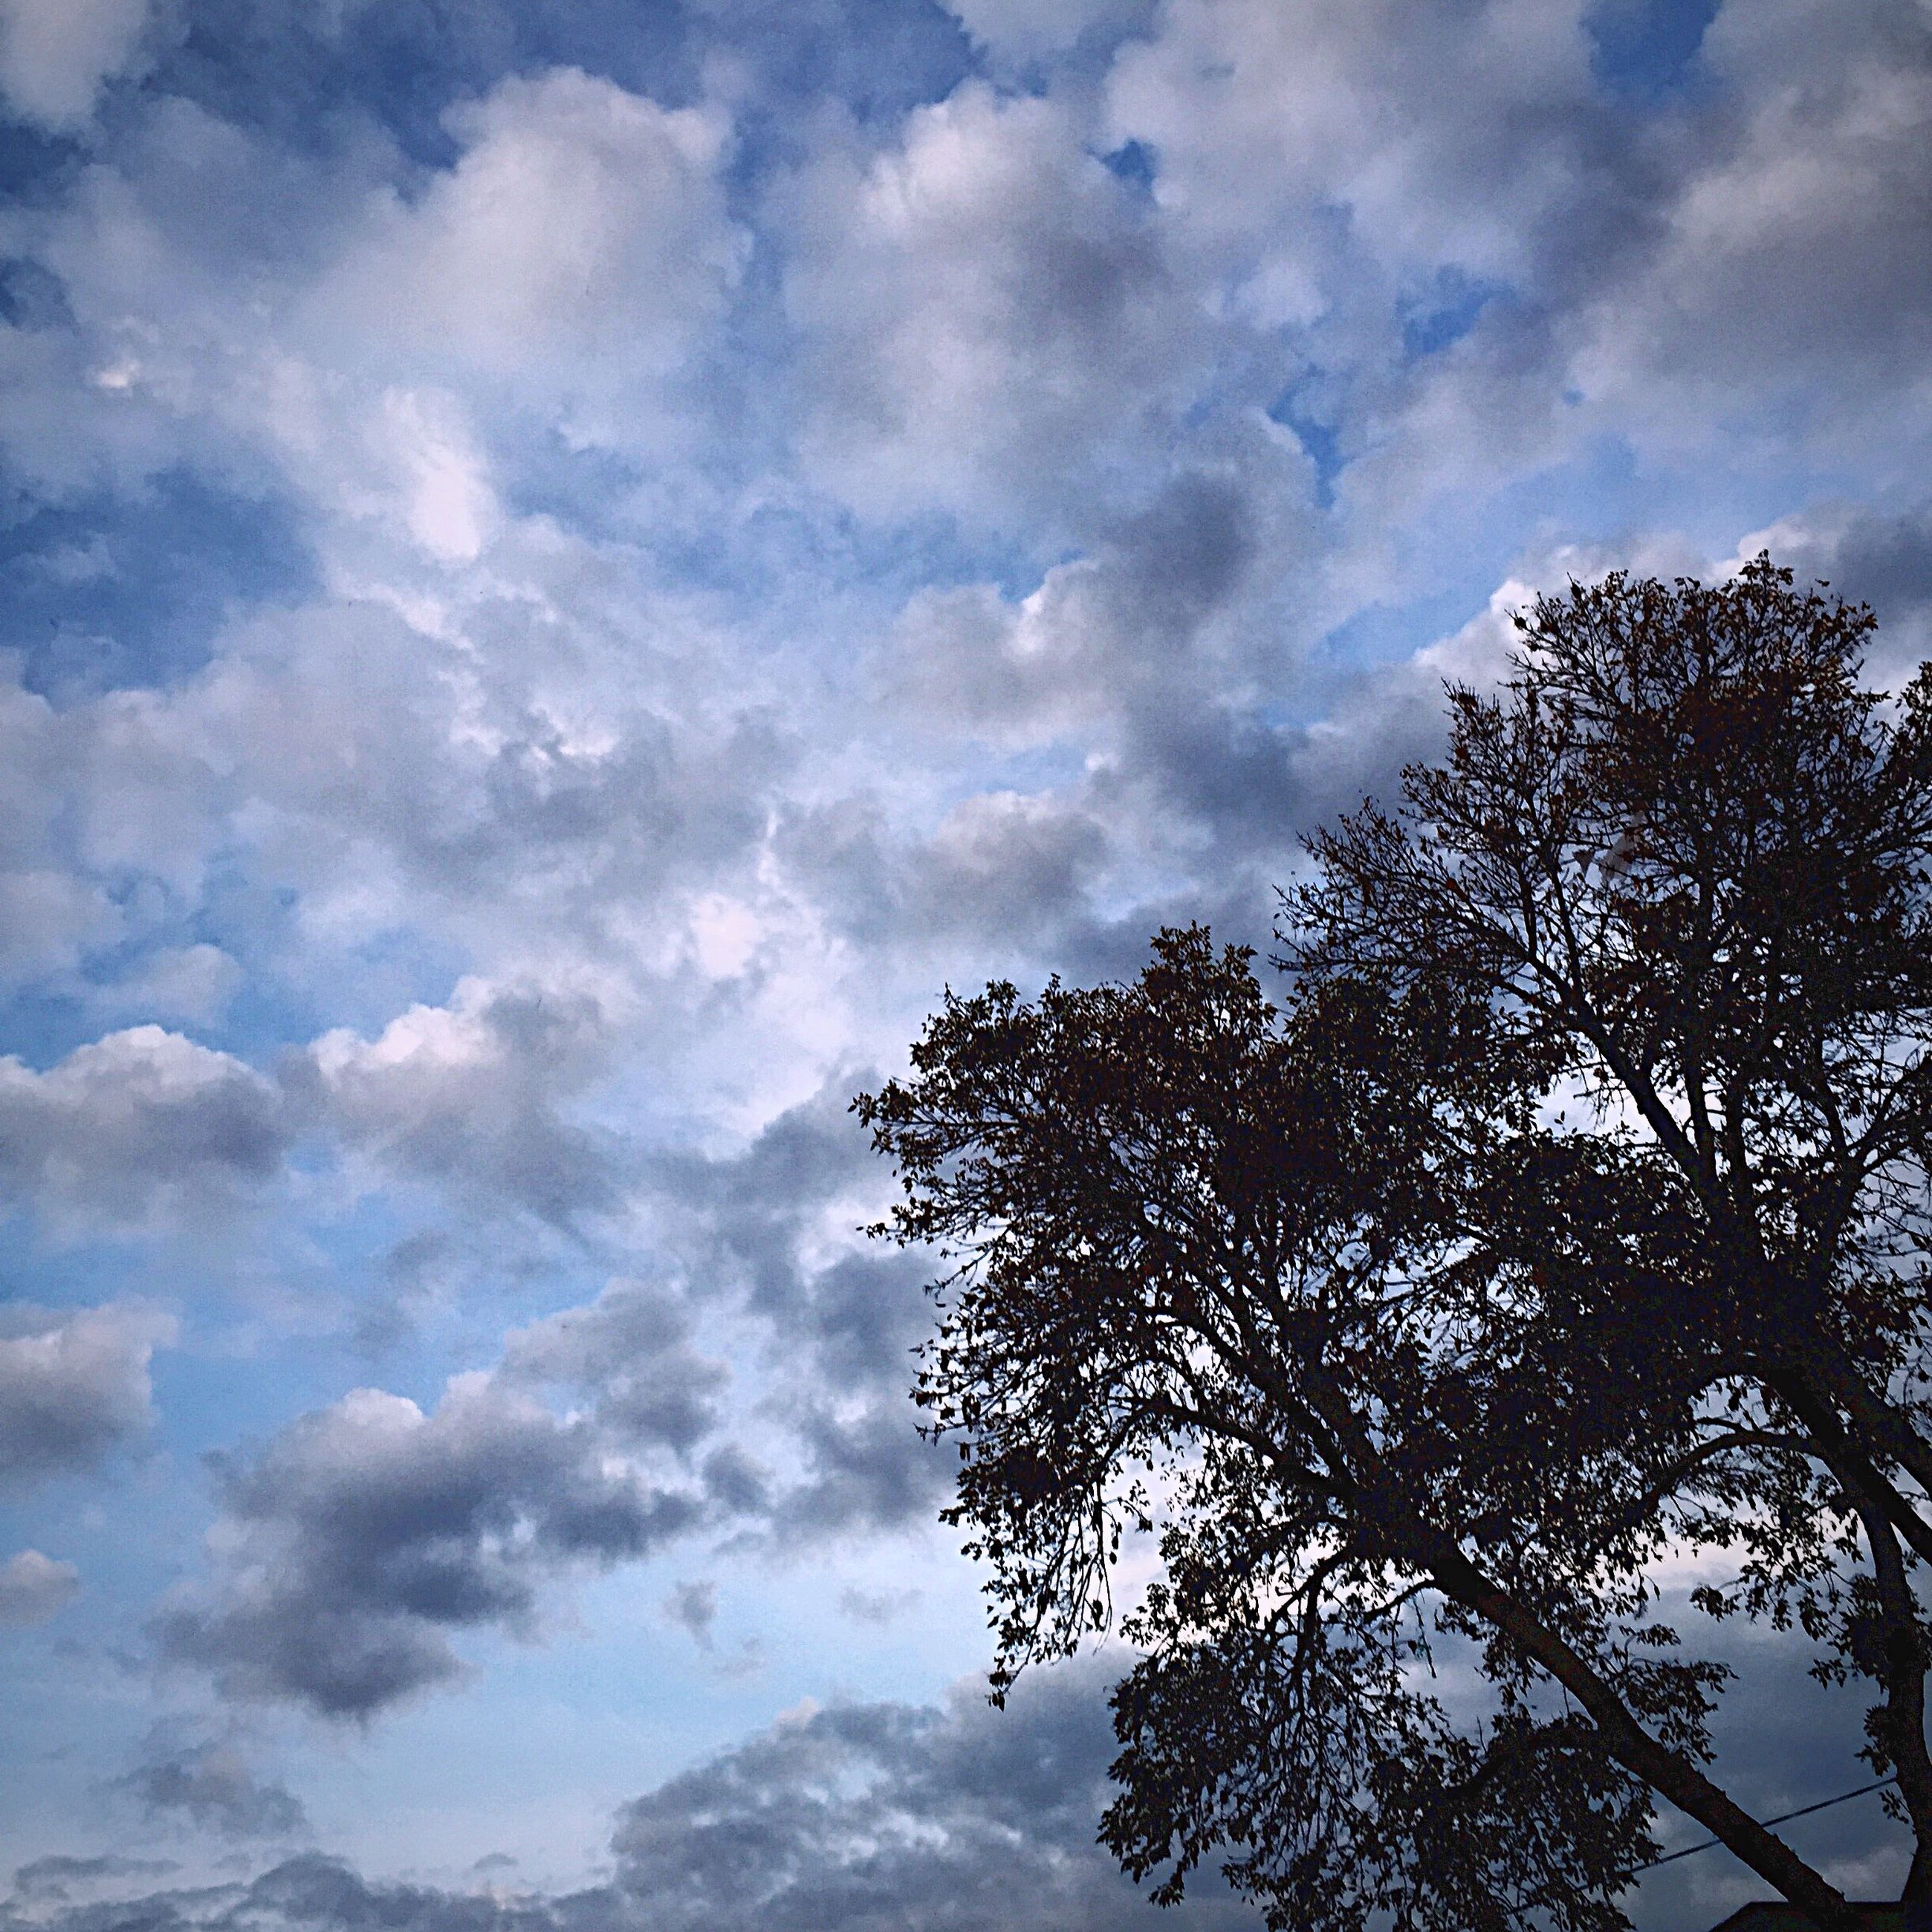 sky, low angle view, tree, cloud - sky, cloudy, tranquility, beauty in nature, nature, cloud, scenics, tranquil scene, growth, branch, day, outdoors, blue, no people, idyllic, weather, high section